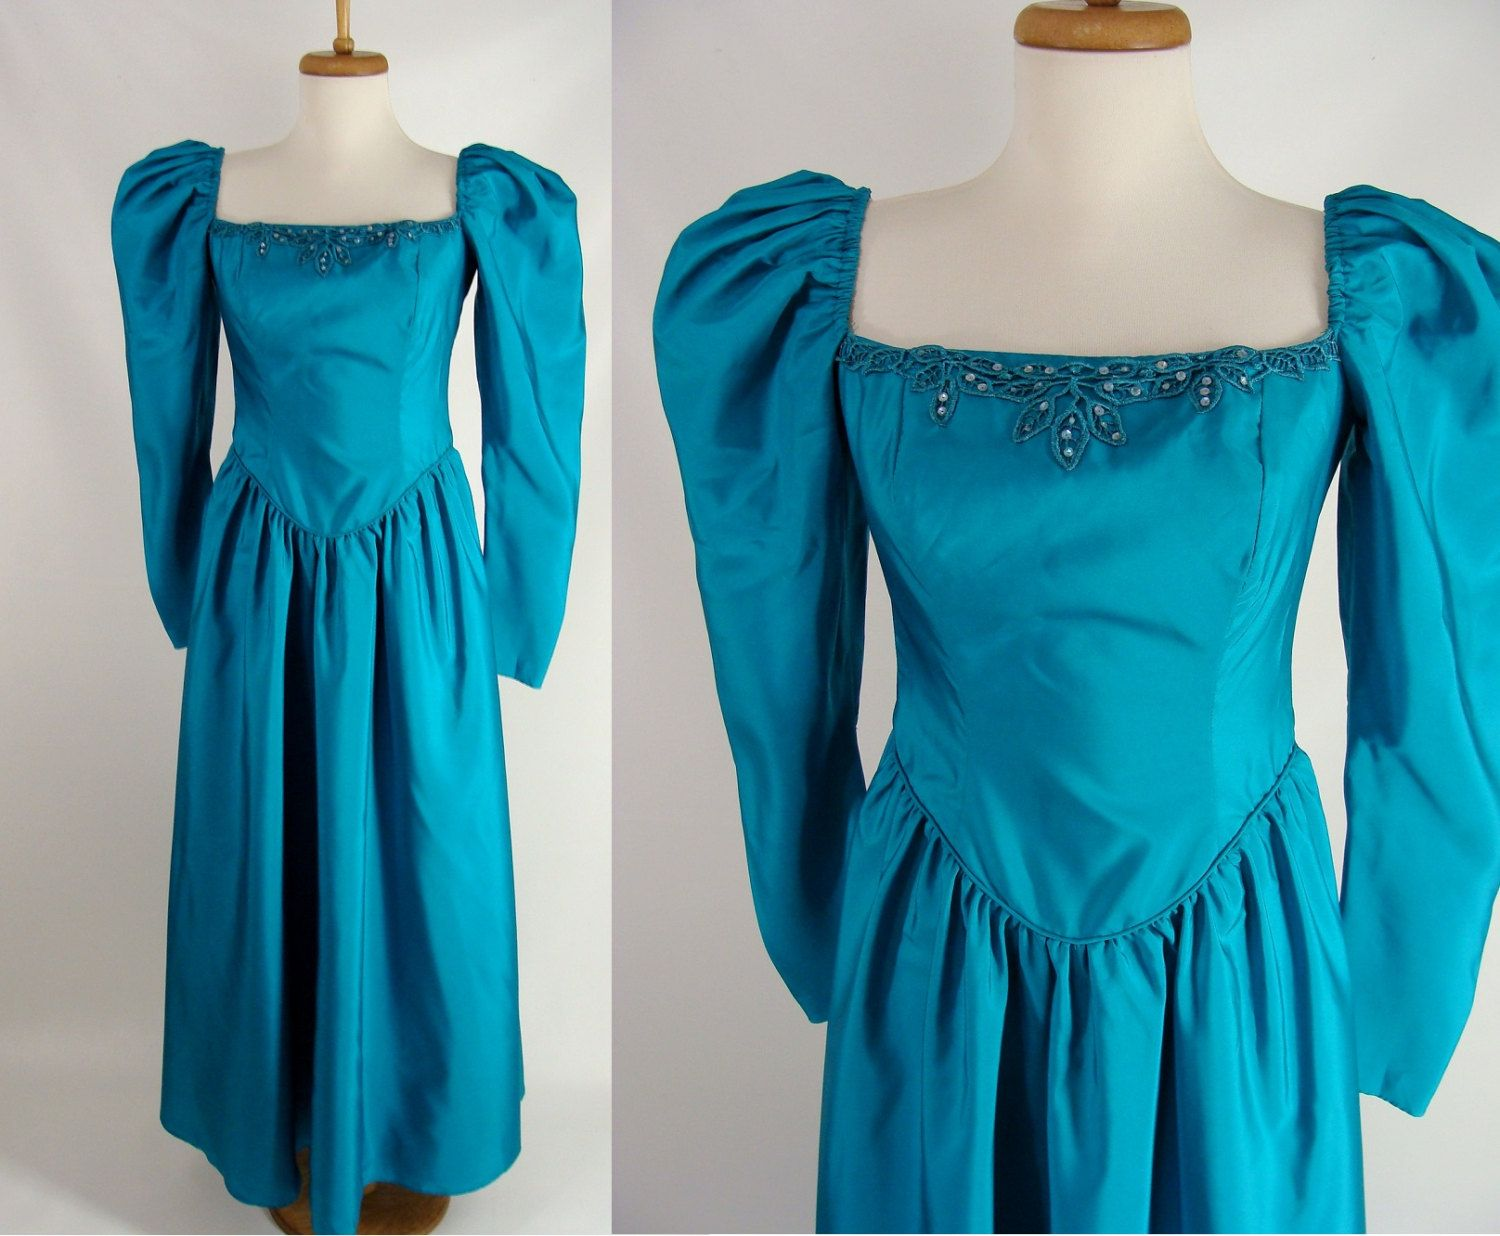 $38.88 vintage 80s 90s Teal Turquoise Blue Green Puff Sleeve Prom ...